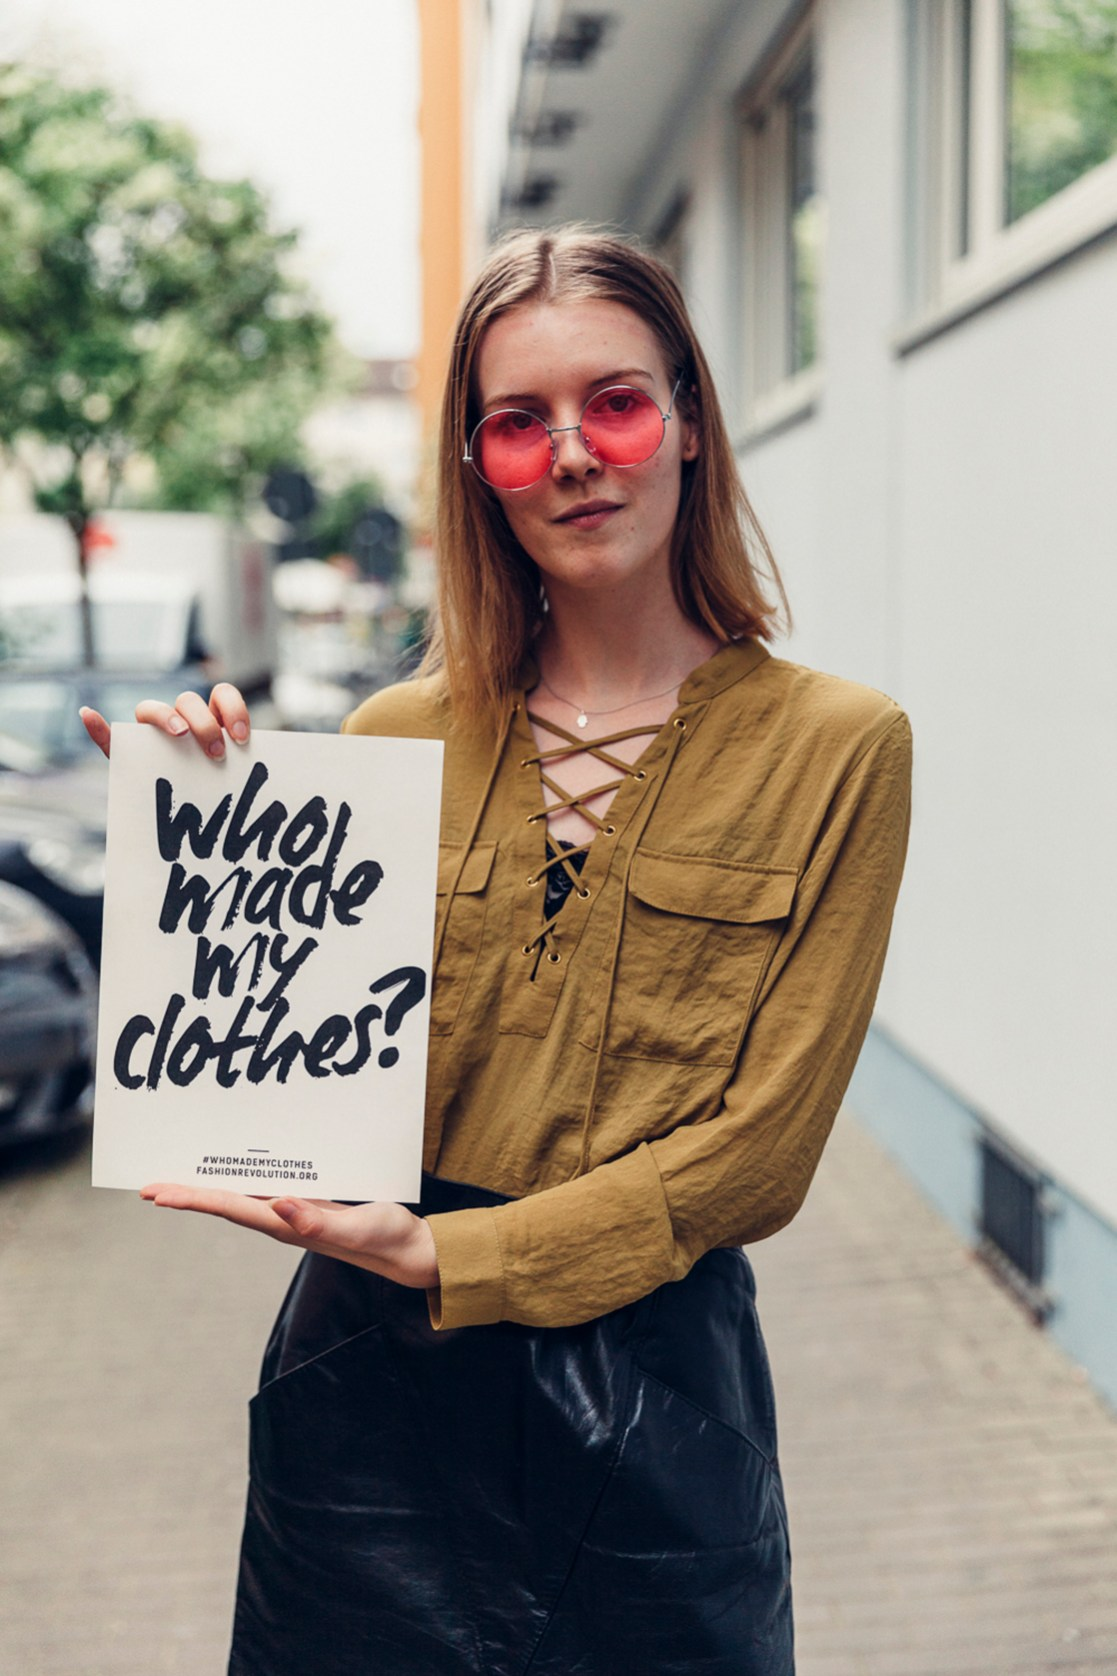 greenlooksgreat-fashrev-week-mainz-zweitstelle-whomademyclothes